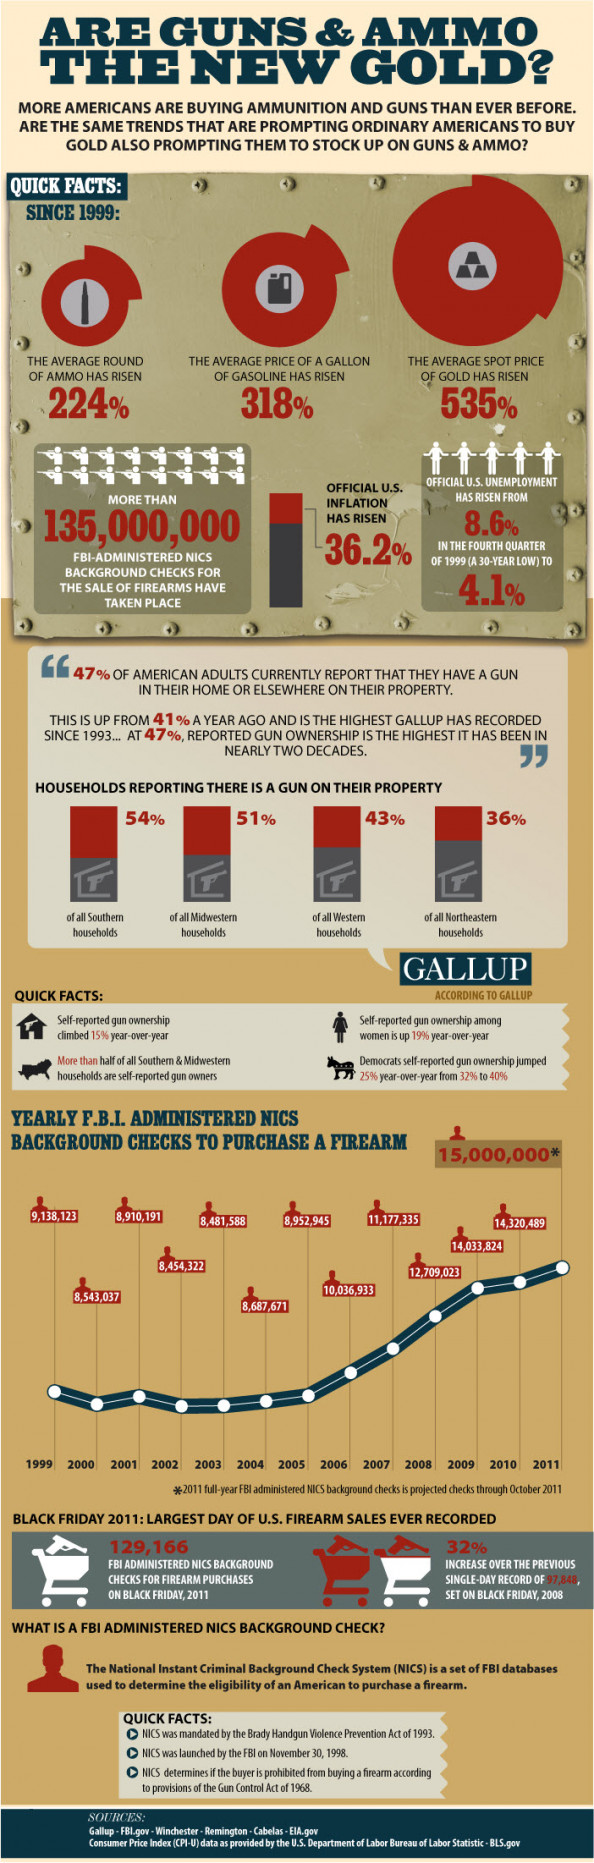 Are Guns & Ammo The New Gold? Infographic